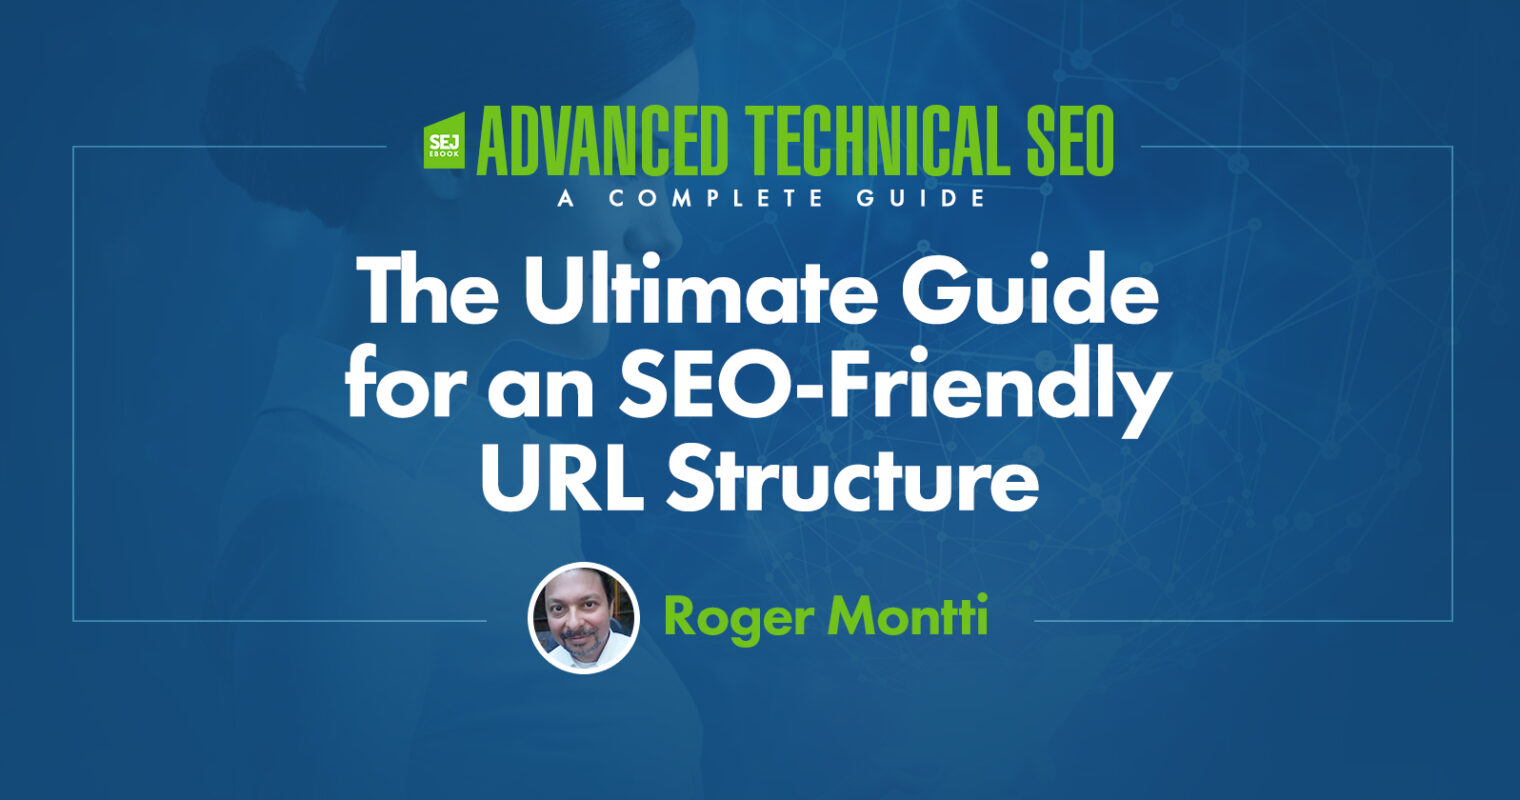 The Ultimate Guide for an SEO-Friendly URL Structure